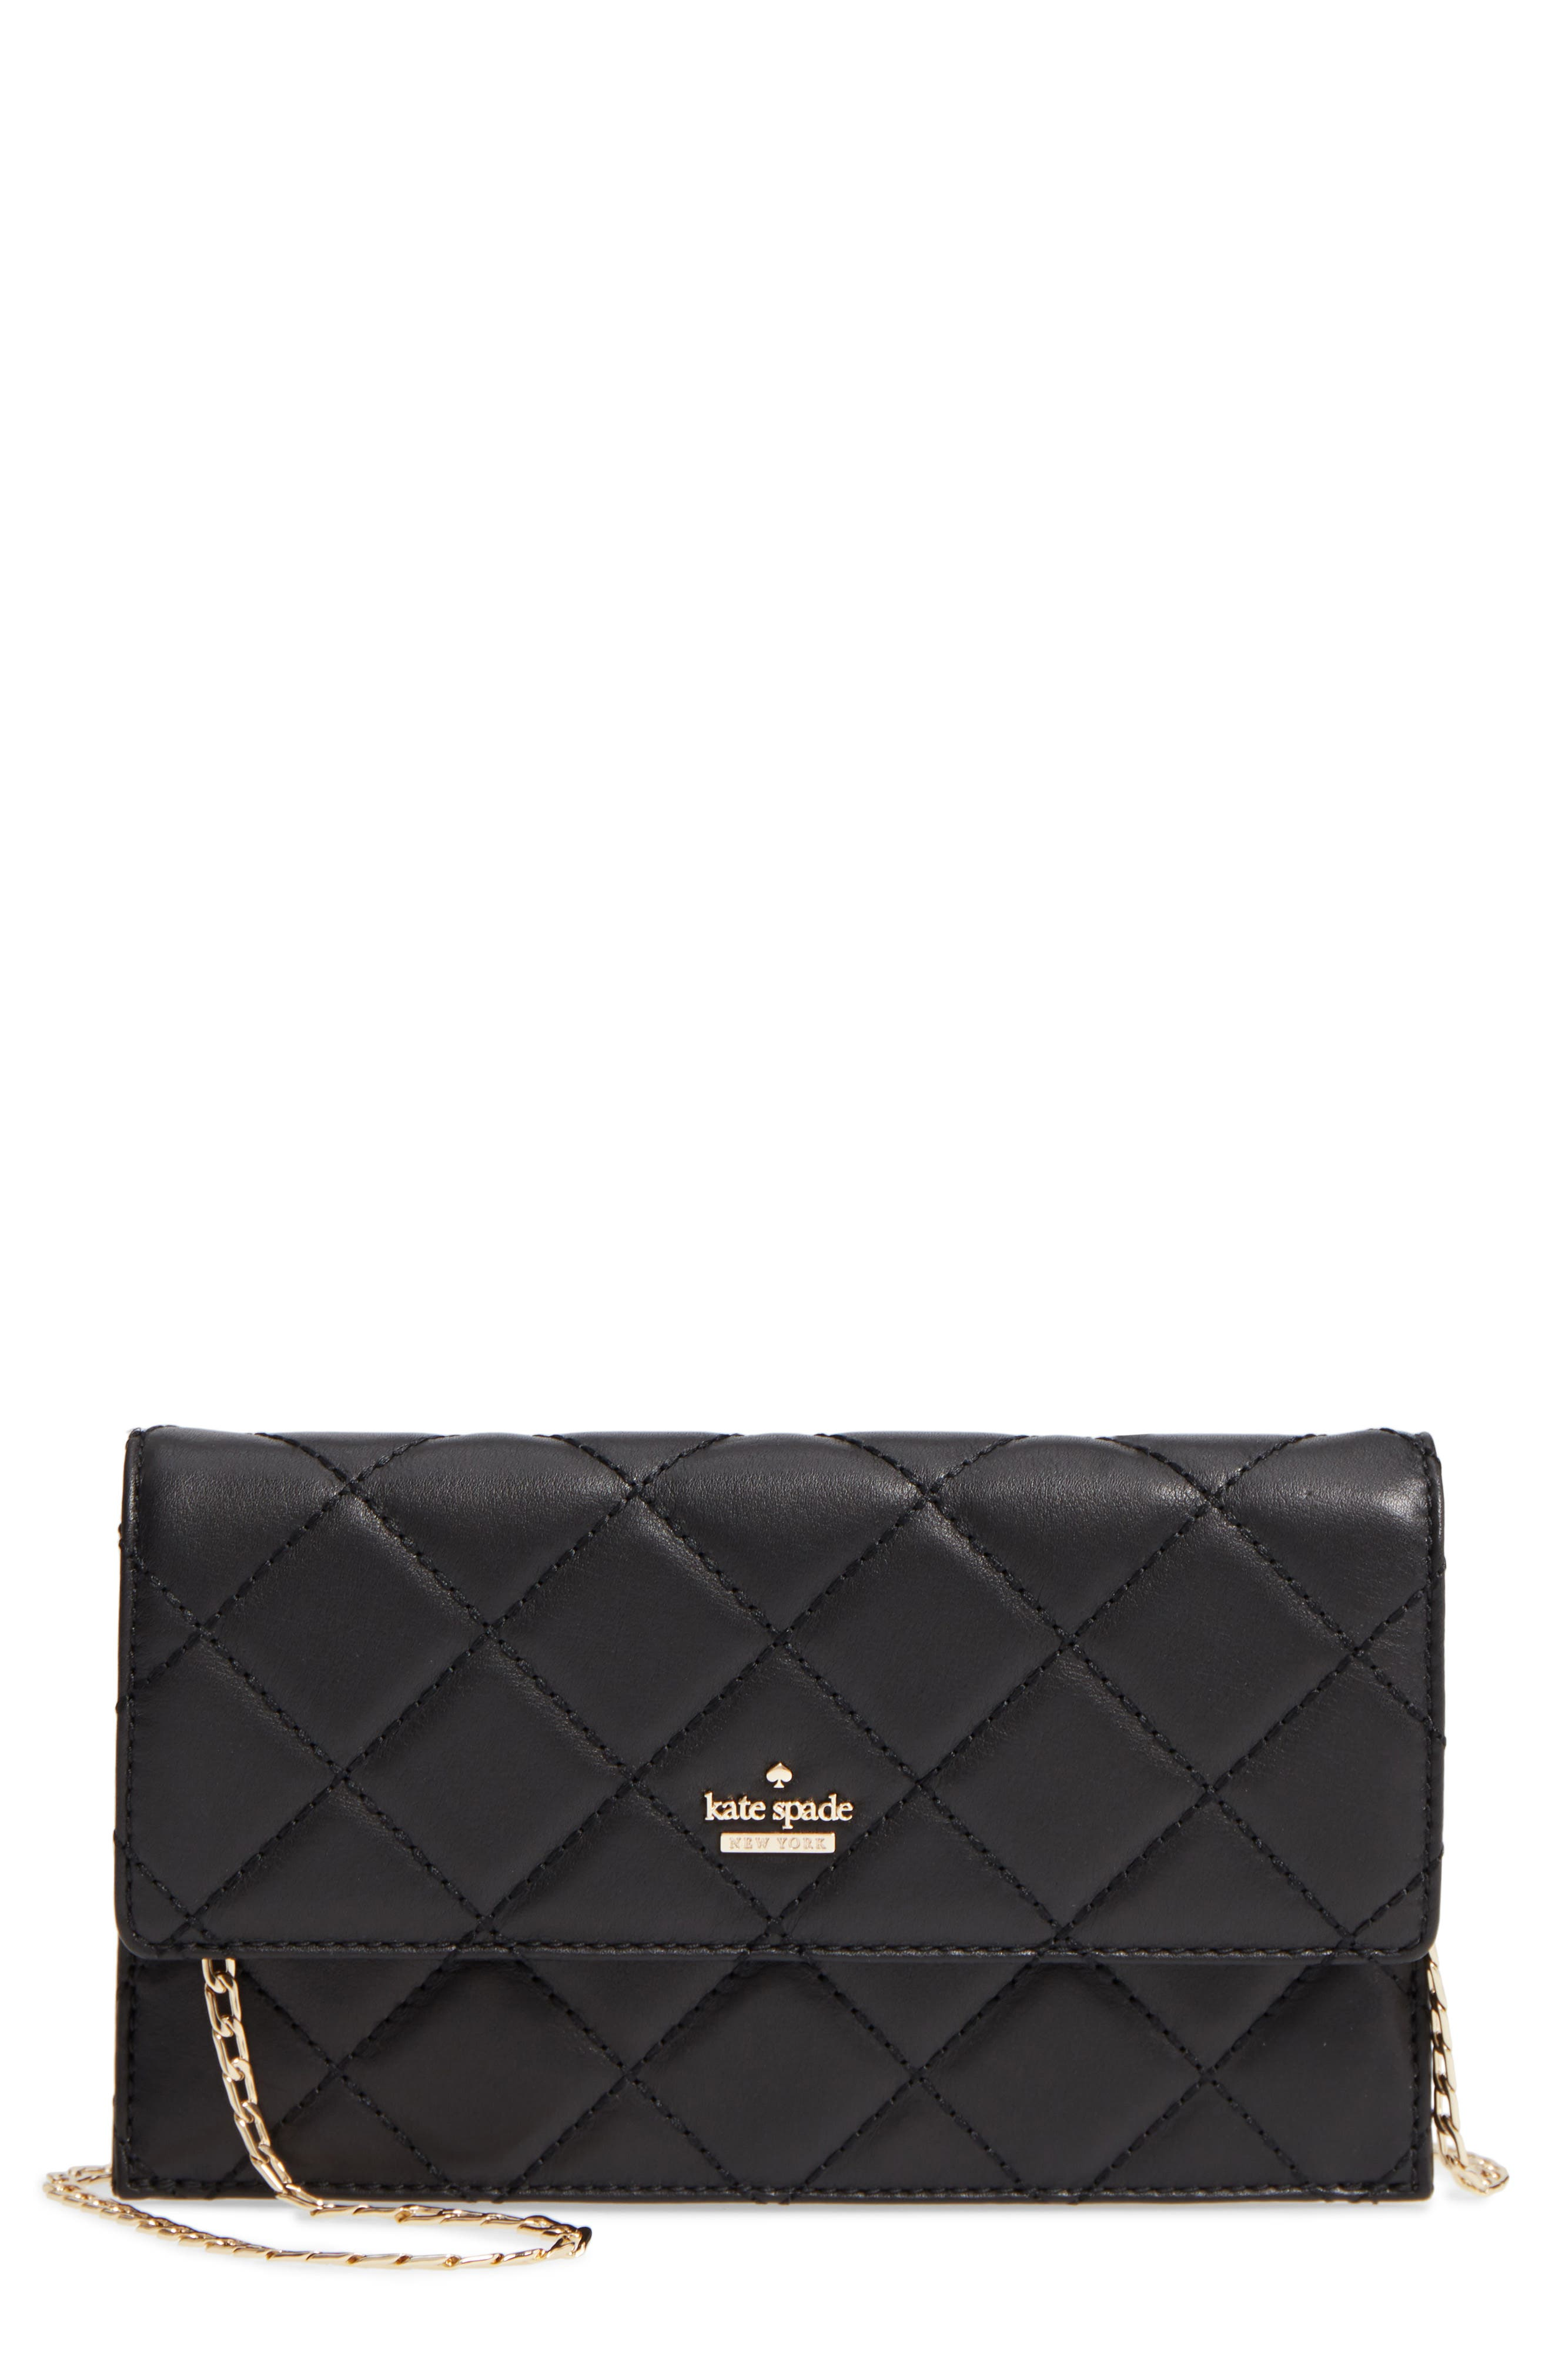 emerson place - brennan quilted leather convertible clutch & card holder,                             Main thumbnail 1, color,                             001